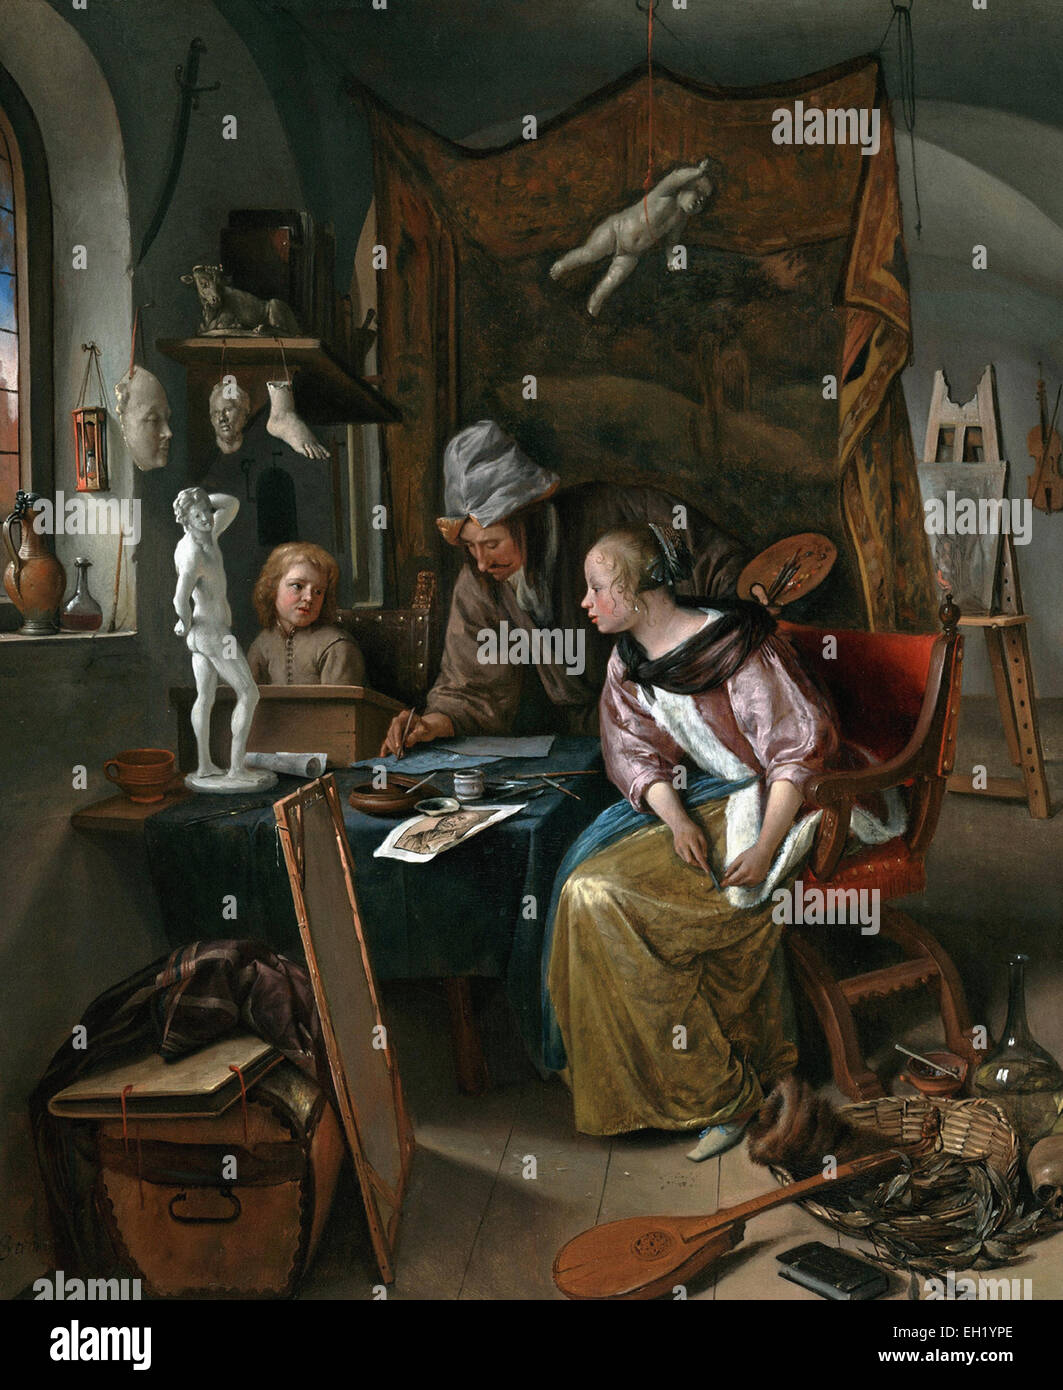 Jan Steen  The Drawing Lesson - Stock Image